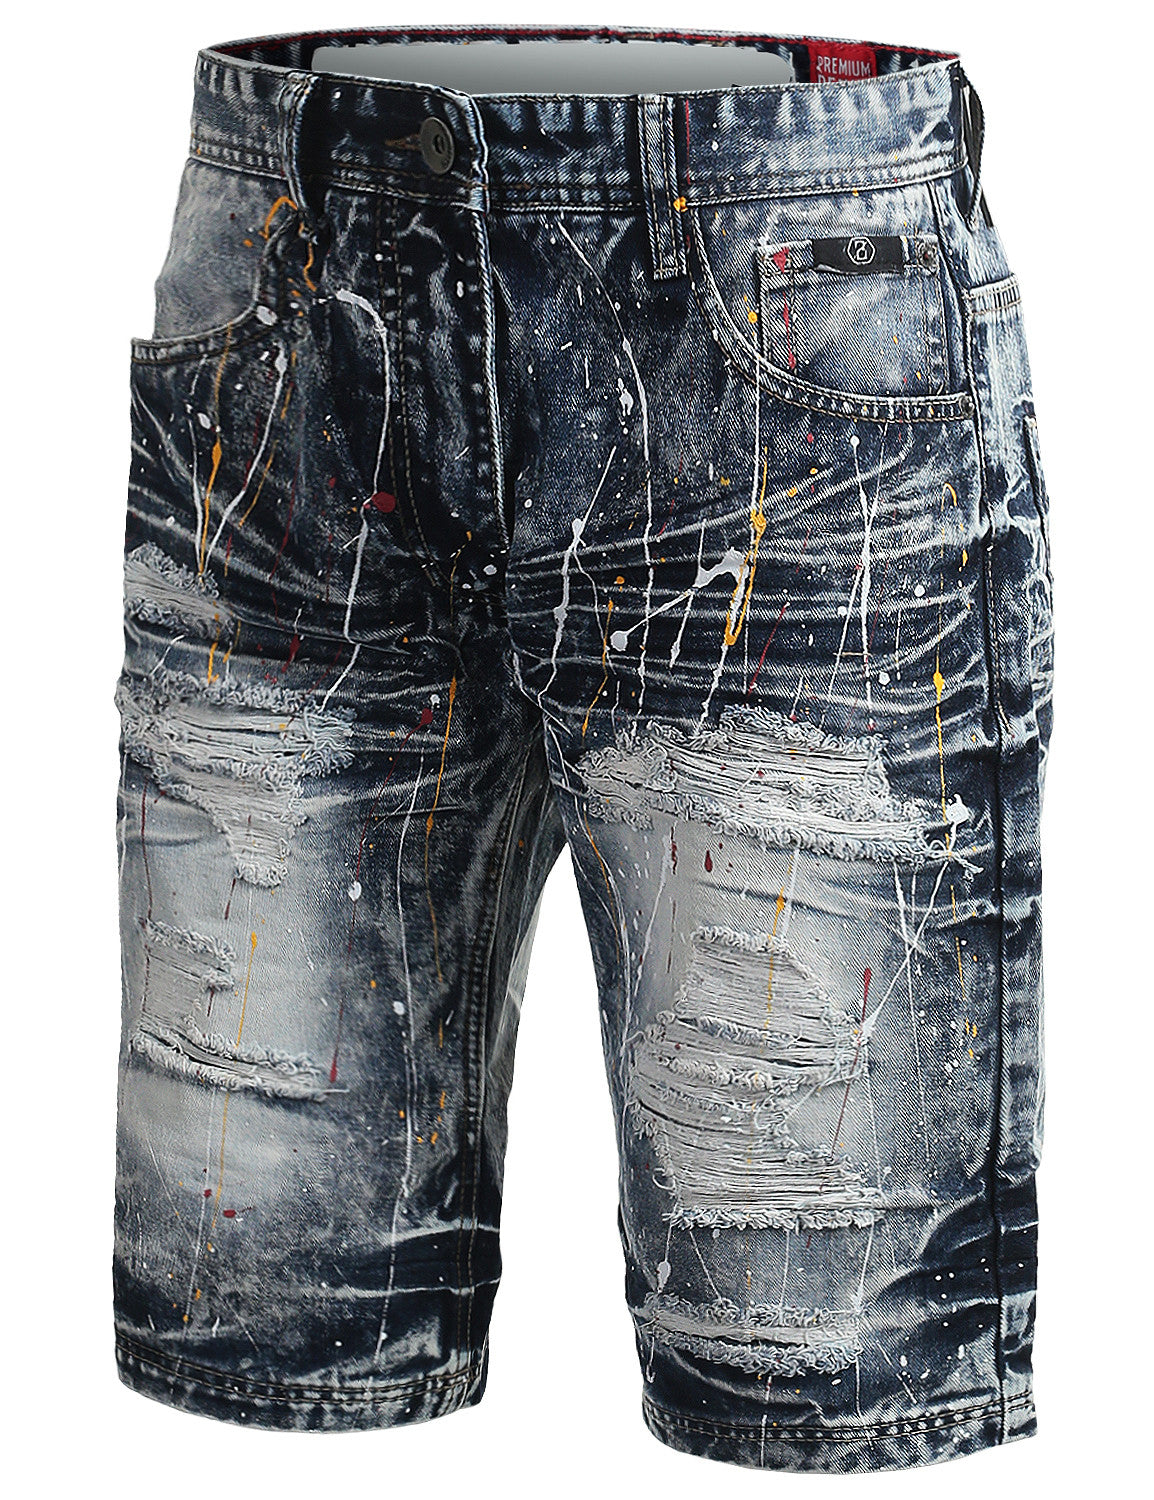 MDINDIGO Multi Color Paint Splashed Denim Shorts - URBANCREWS